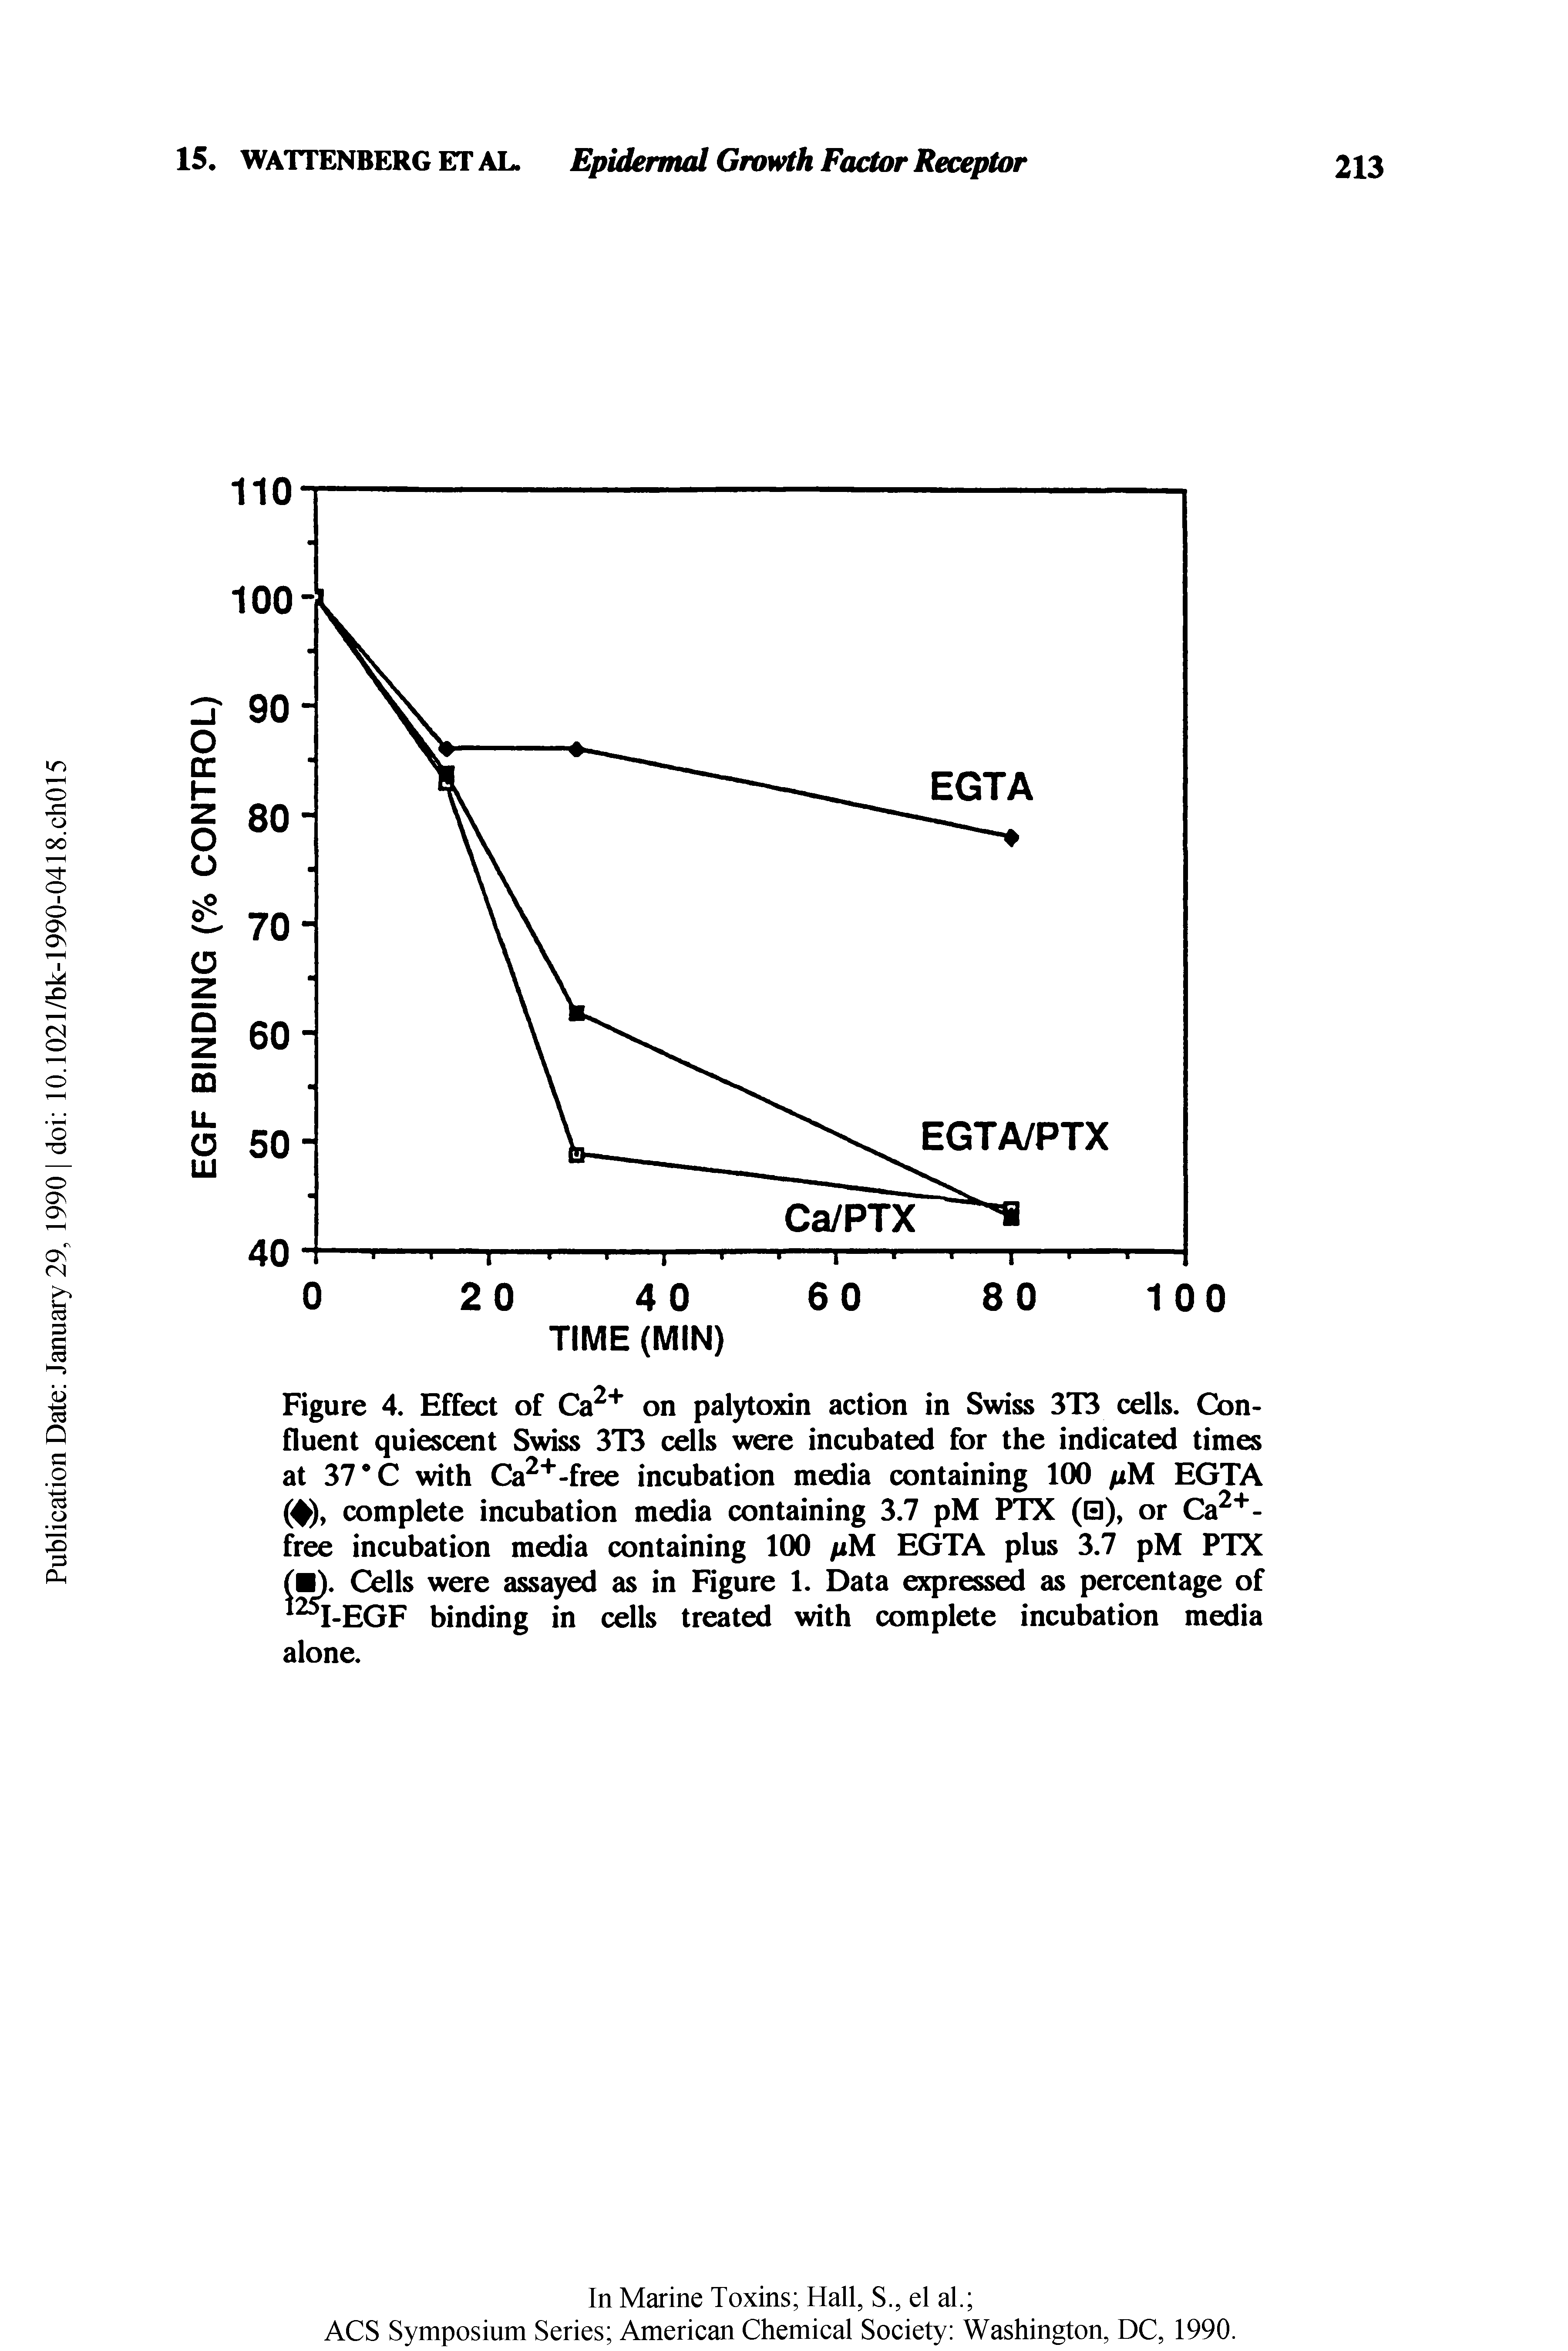 Figure 4. Effect of Ca on palytoxin action in Swiss 3T3 cells. Confluent quiescent Swiss 3T3 cells were incubated for the indicated times at 37 C with Ca -free incubation media containing 100 pM EGTA (4), complete incubation media containing 3.7 pM PTX (0), or Ca -free incubation media containing 100 pM EGTA plus 3.7 pM PTX Cells were assayed as in Figure 1. Data expressed as percentage of I-EGF binding in cells treated with complete incubation media alone.